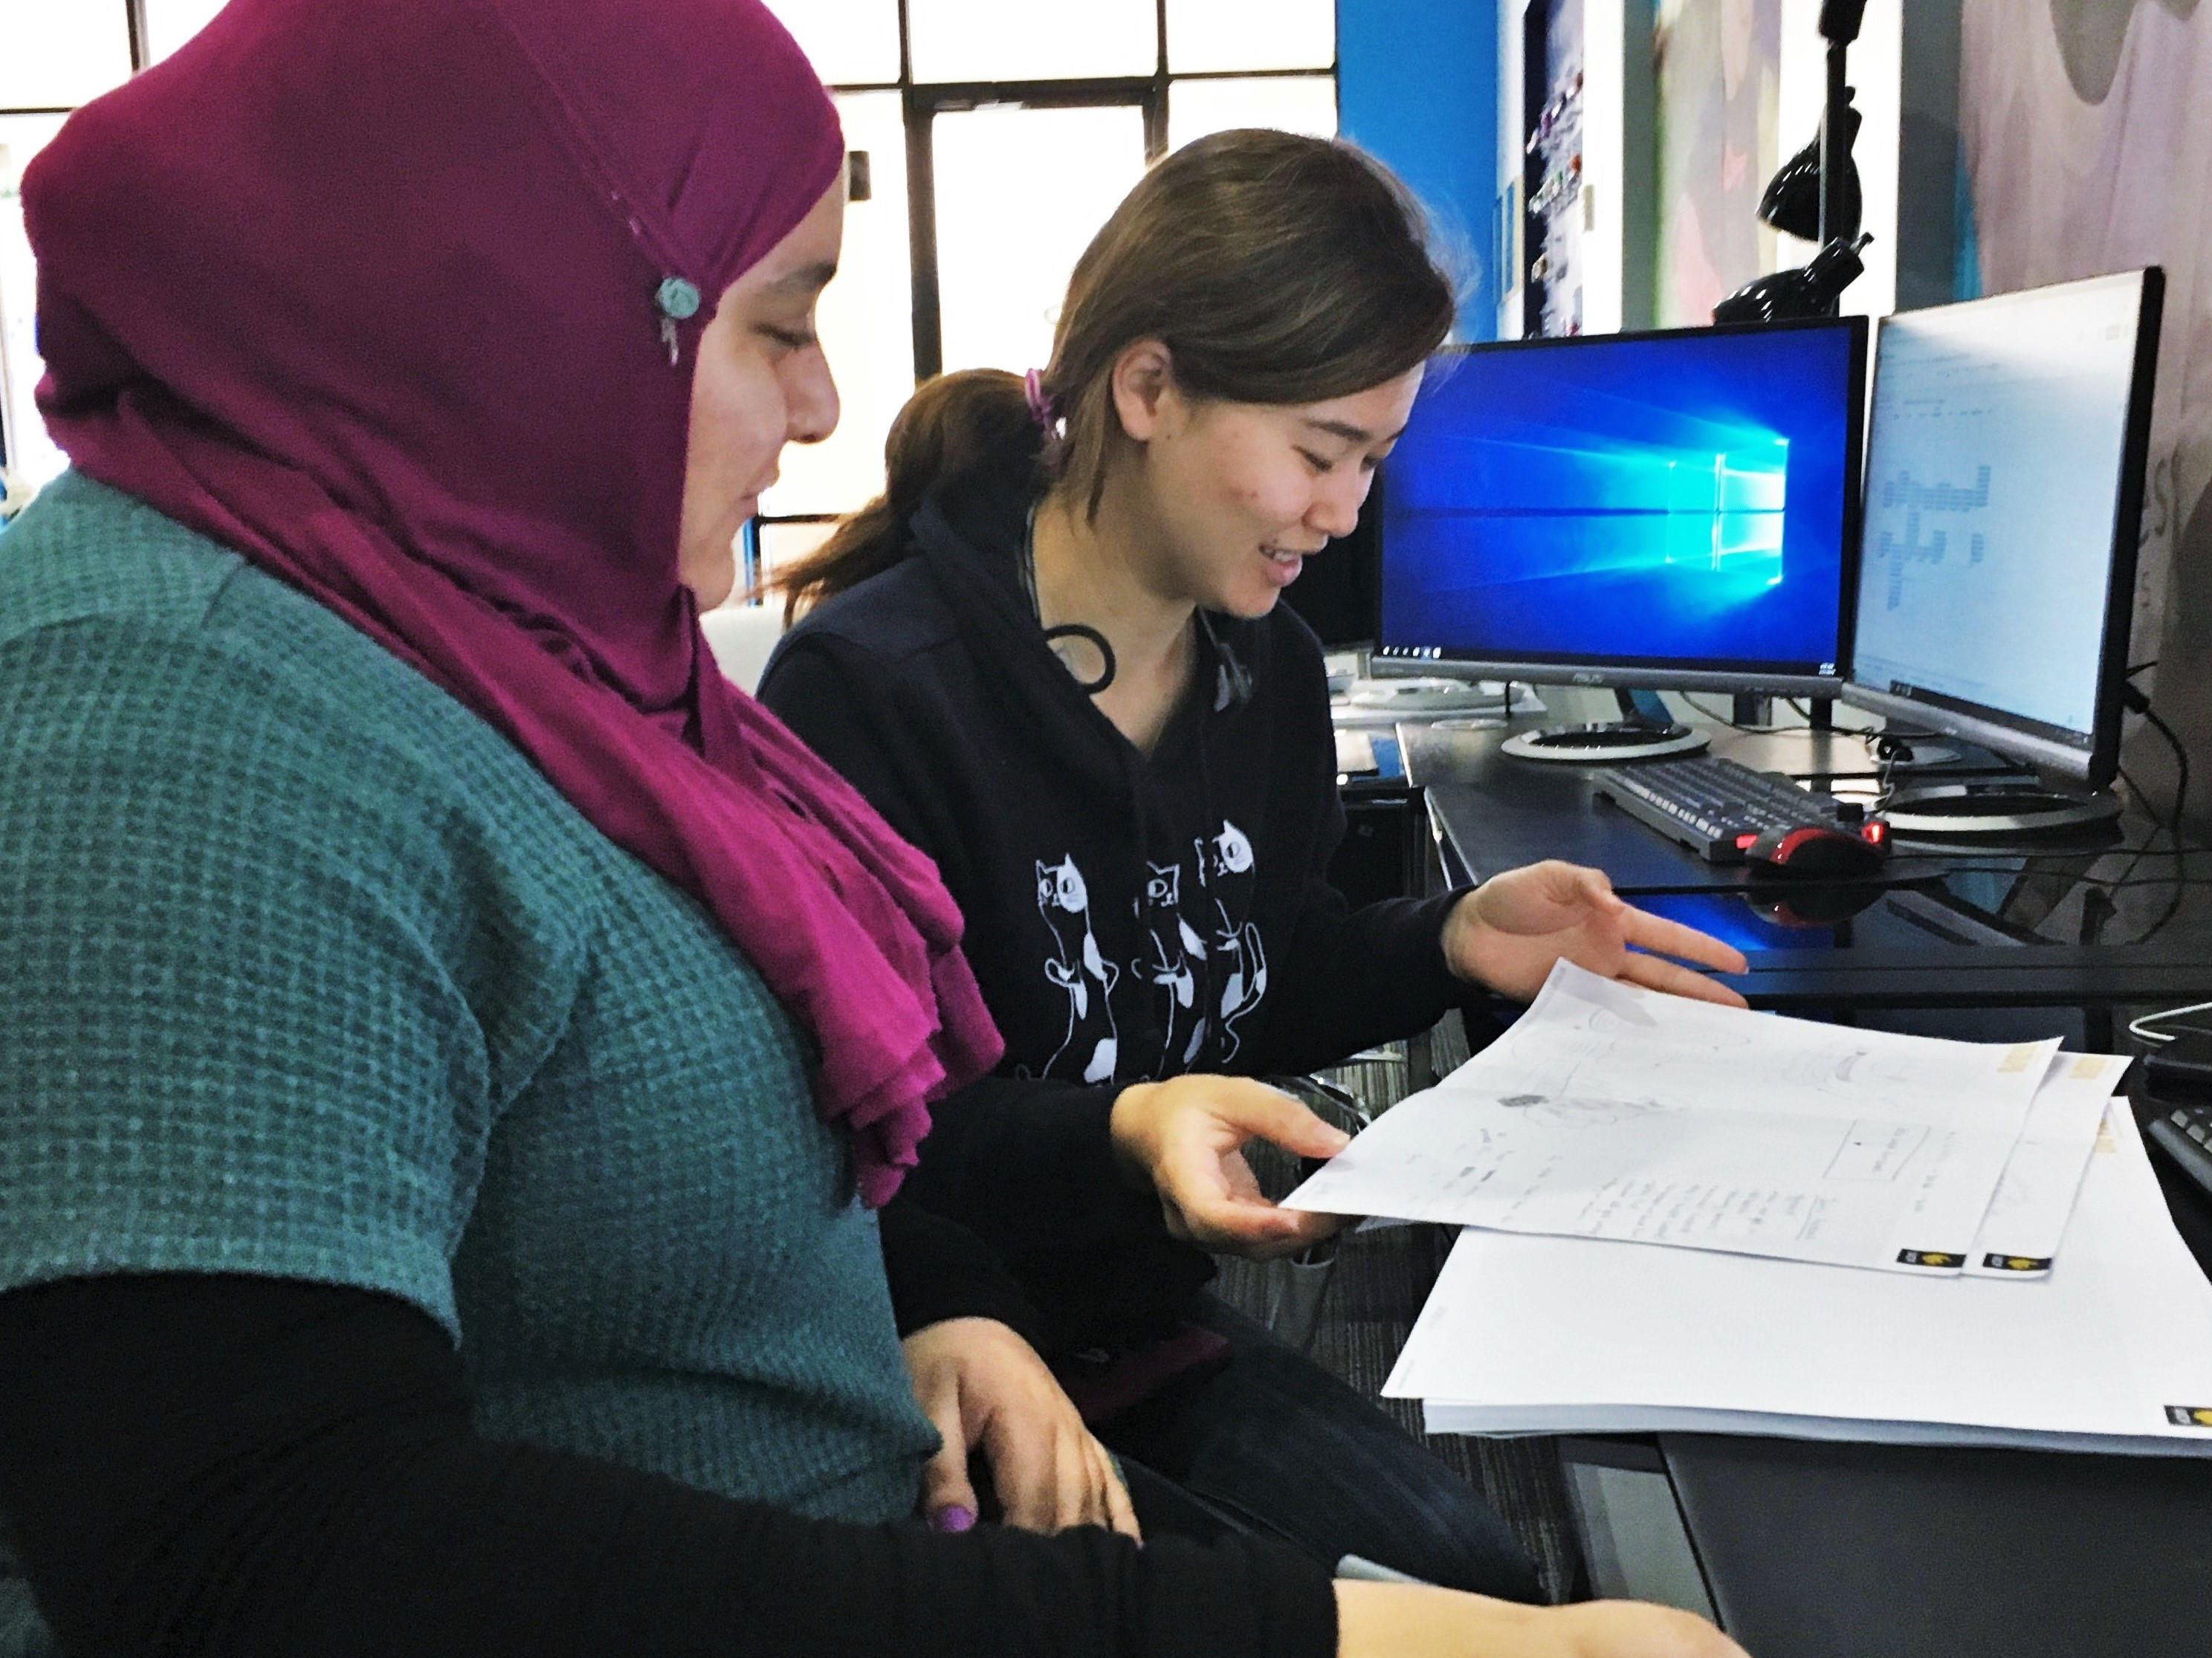 Two of our Limbitless scholars, Basma and Julia, brainstorming ideas for one of their engineering projects.